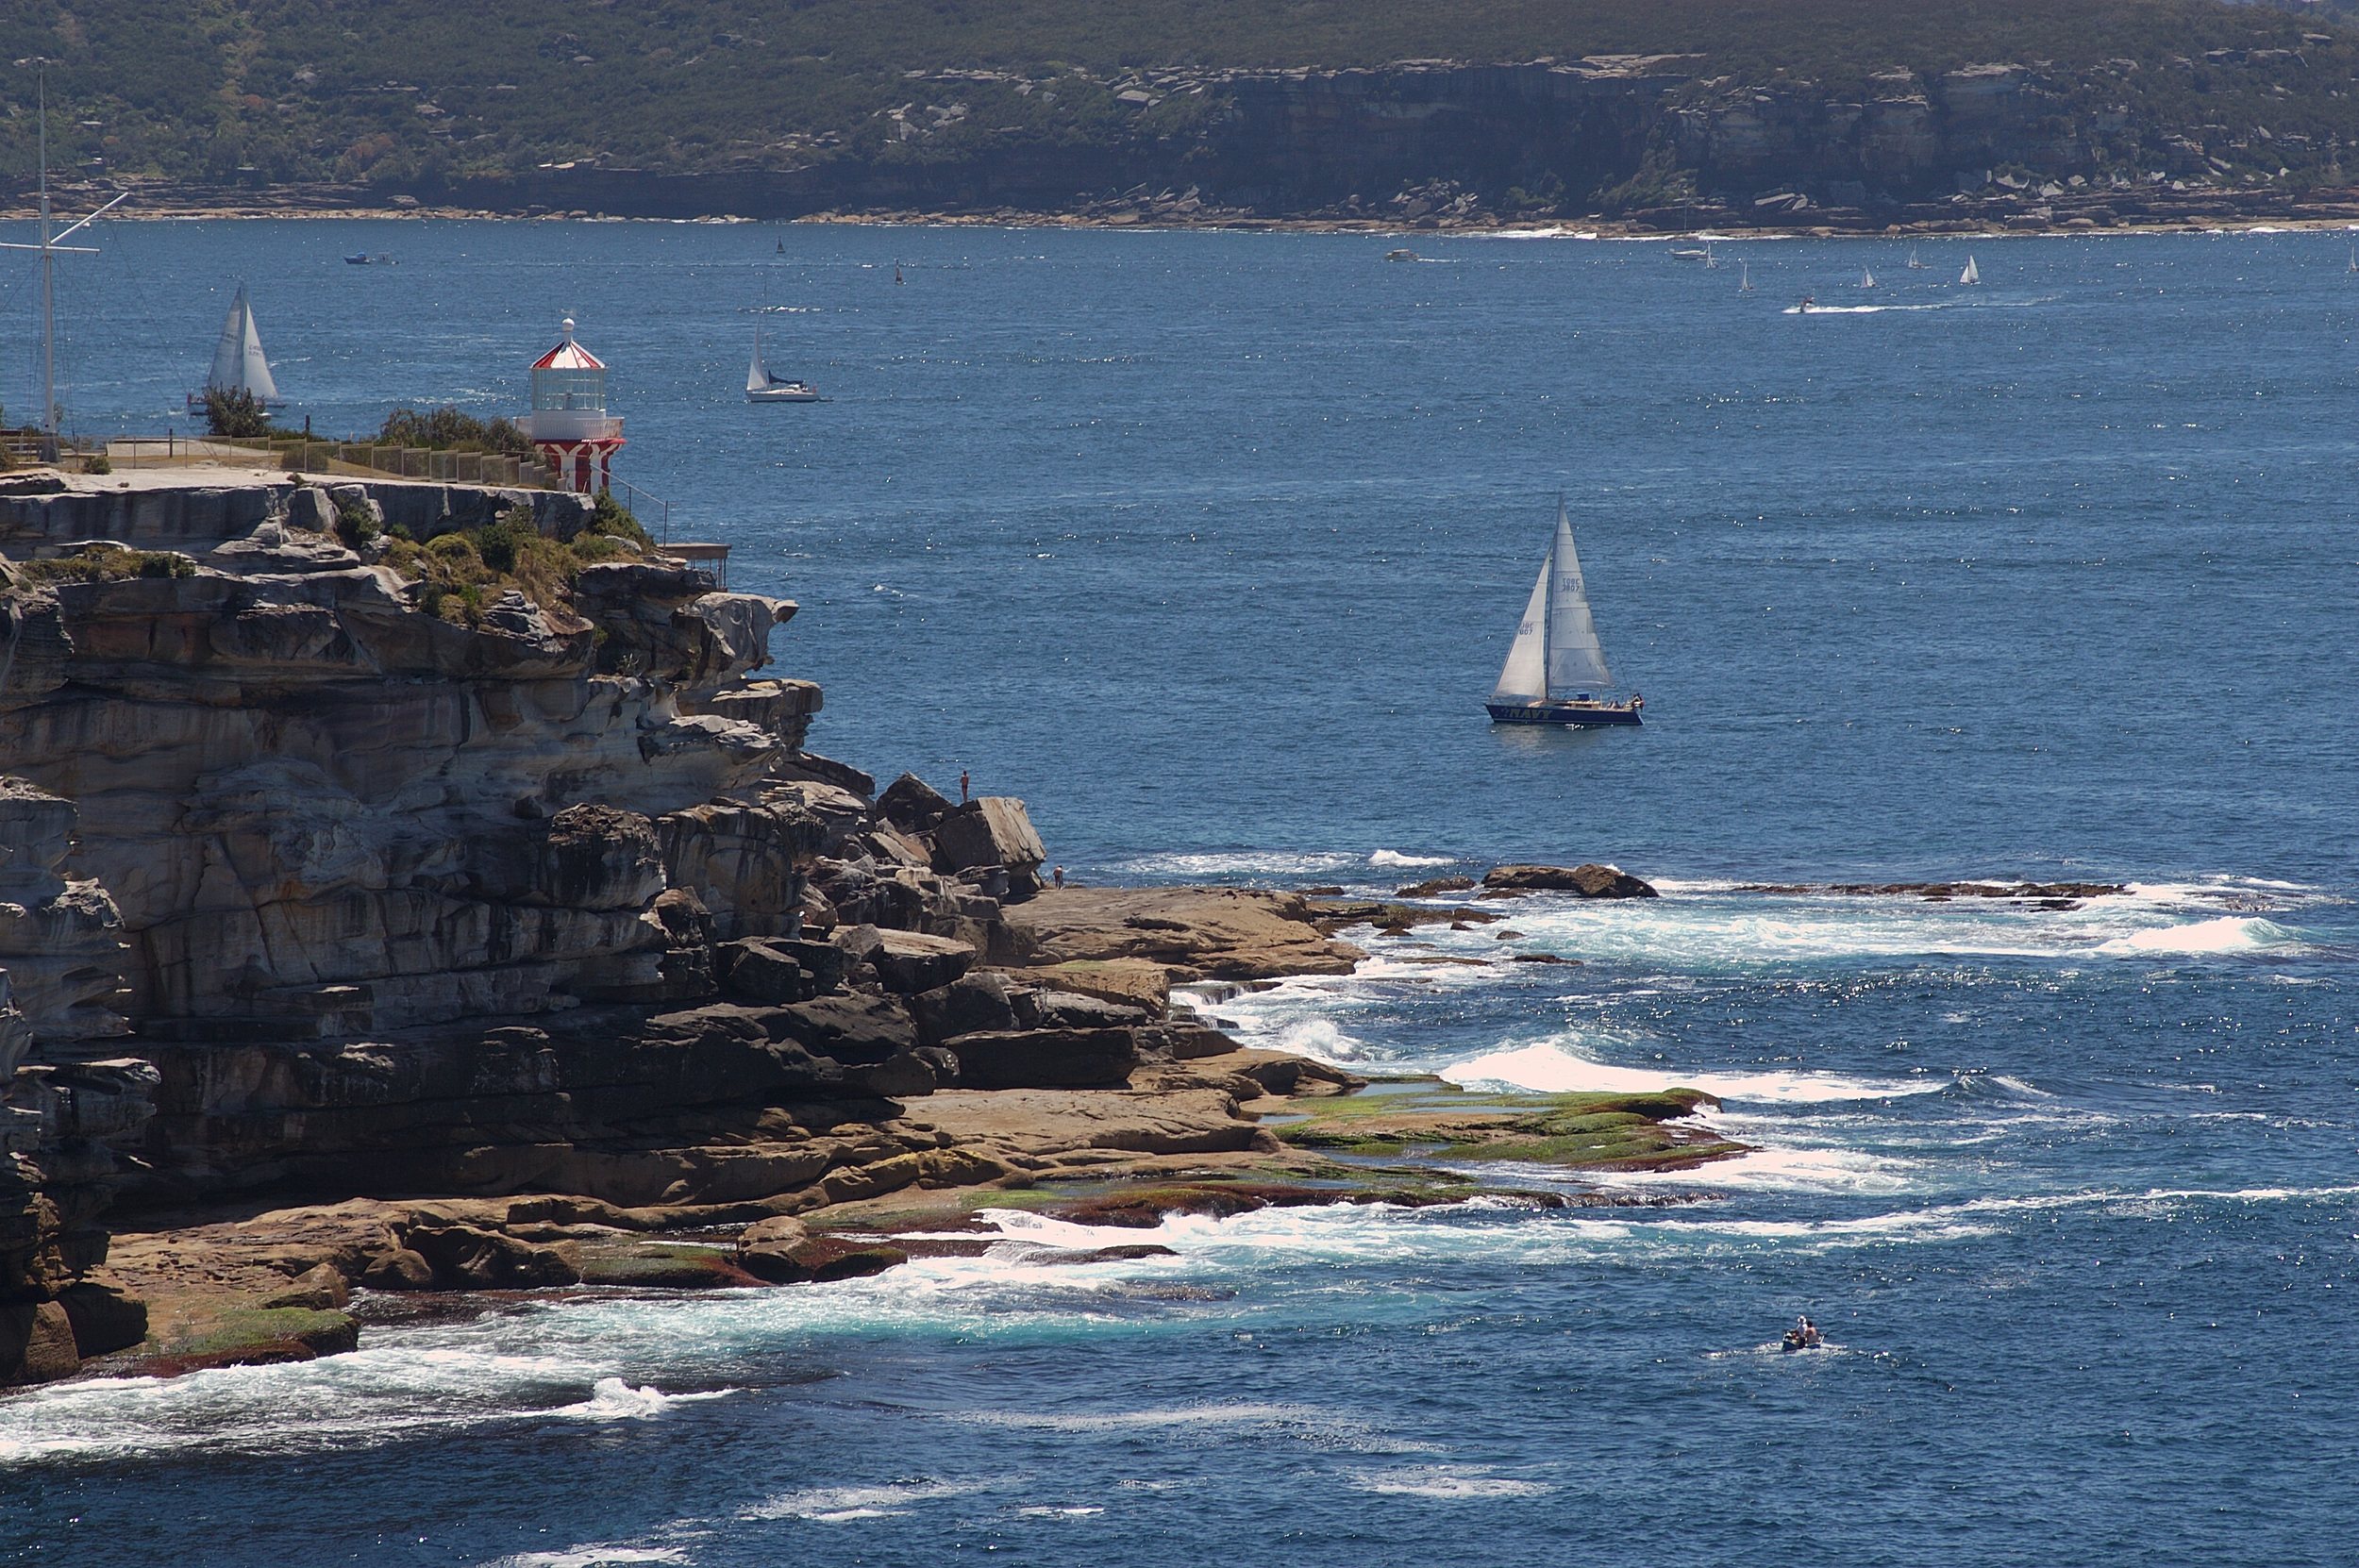 You can see from the cliffs and rocks at the mouth of the harbor why it wasso dangerous for ships coming into the harbor!